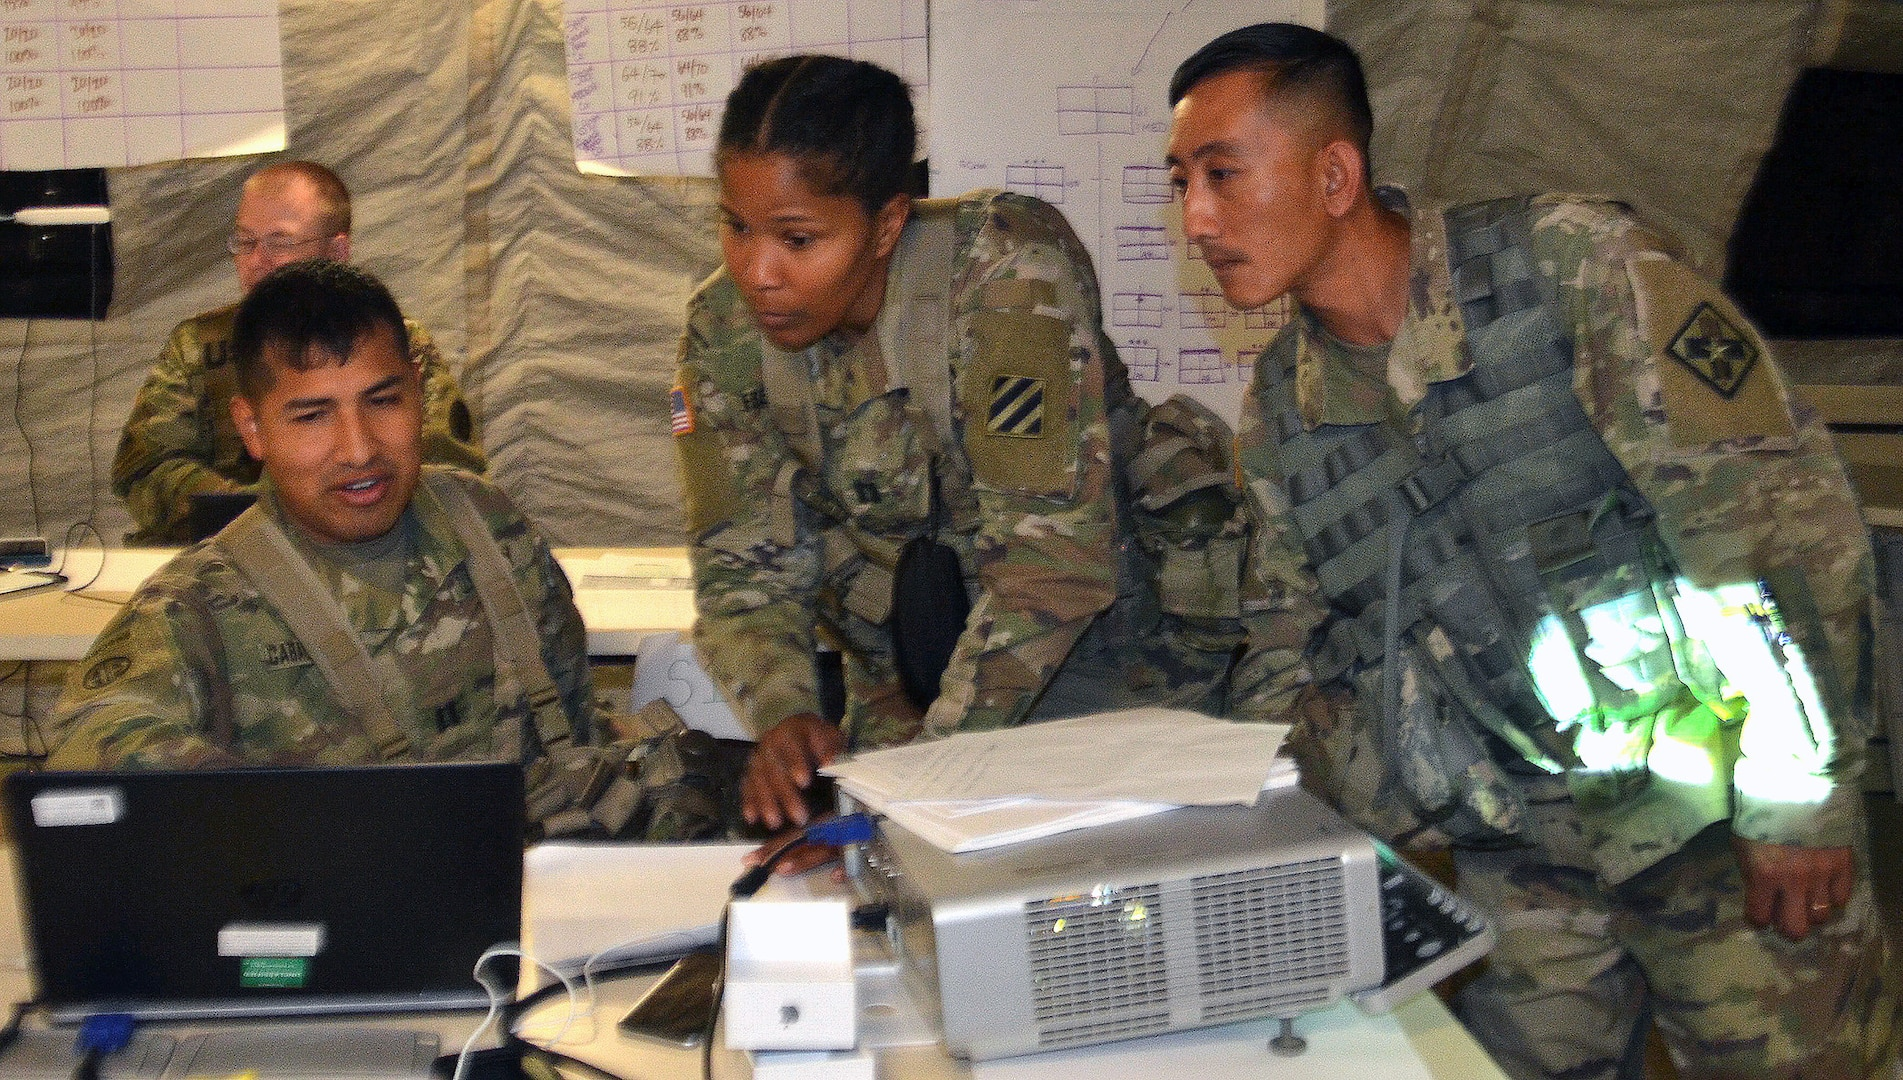 Army Medical Department Center & School, Health Readiness Center of Excellence students participate in a field training exercise for the Captains Career Course at Joint Base San Antonio-Camp Bullis May 7. From left to right are Capt. Jonatan Caballero, 3rd Cavalry Regiment medical support operations officer at Fort Hood, Texas; Capt. Romia Freeman, 3rd Combat Aviation Brigade behavioral health officer at Hunter Army Airfield, Ga.; and Chief Warrant Officer Phoutthasone Inthalangsy, Medical Education and Training Campus chief of curriculum support at Joint Base San Antonio-Fort Sam Houston. During the exercise, the students were part of a medical brigade putting together a disaster relief plan to support civil authorities responding to a hurricane that made landfall at Houston. Students in the Captains Career Course undergo nine weeks of training that includes classroom and hands-on training about the Military Decision Making Process, Army Health Systems Support and Force Health Protection doctrine, unit training management, leadership skills and staff officer functions.